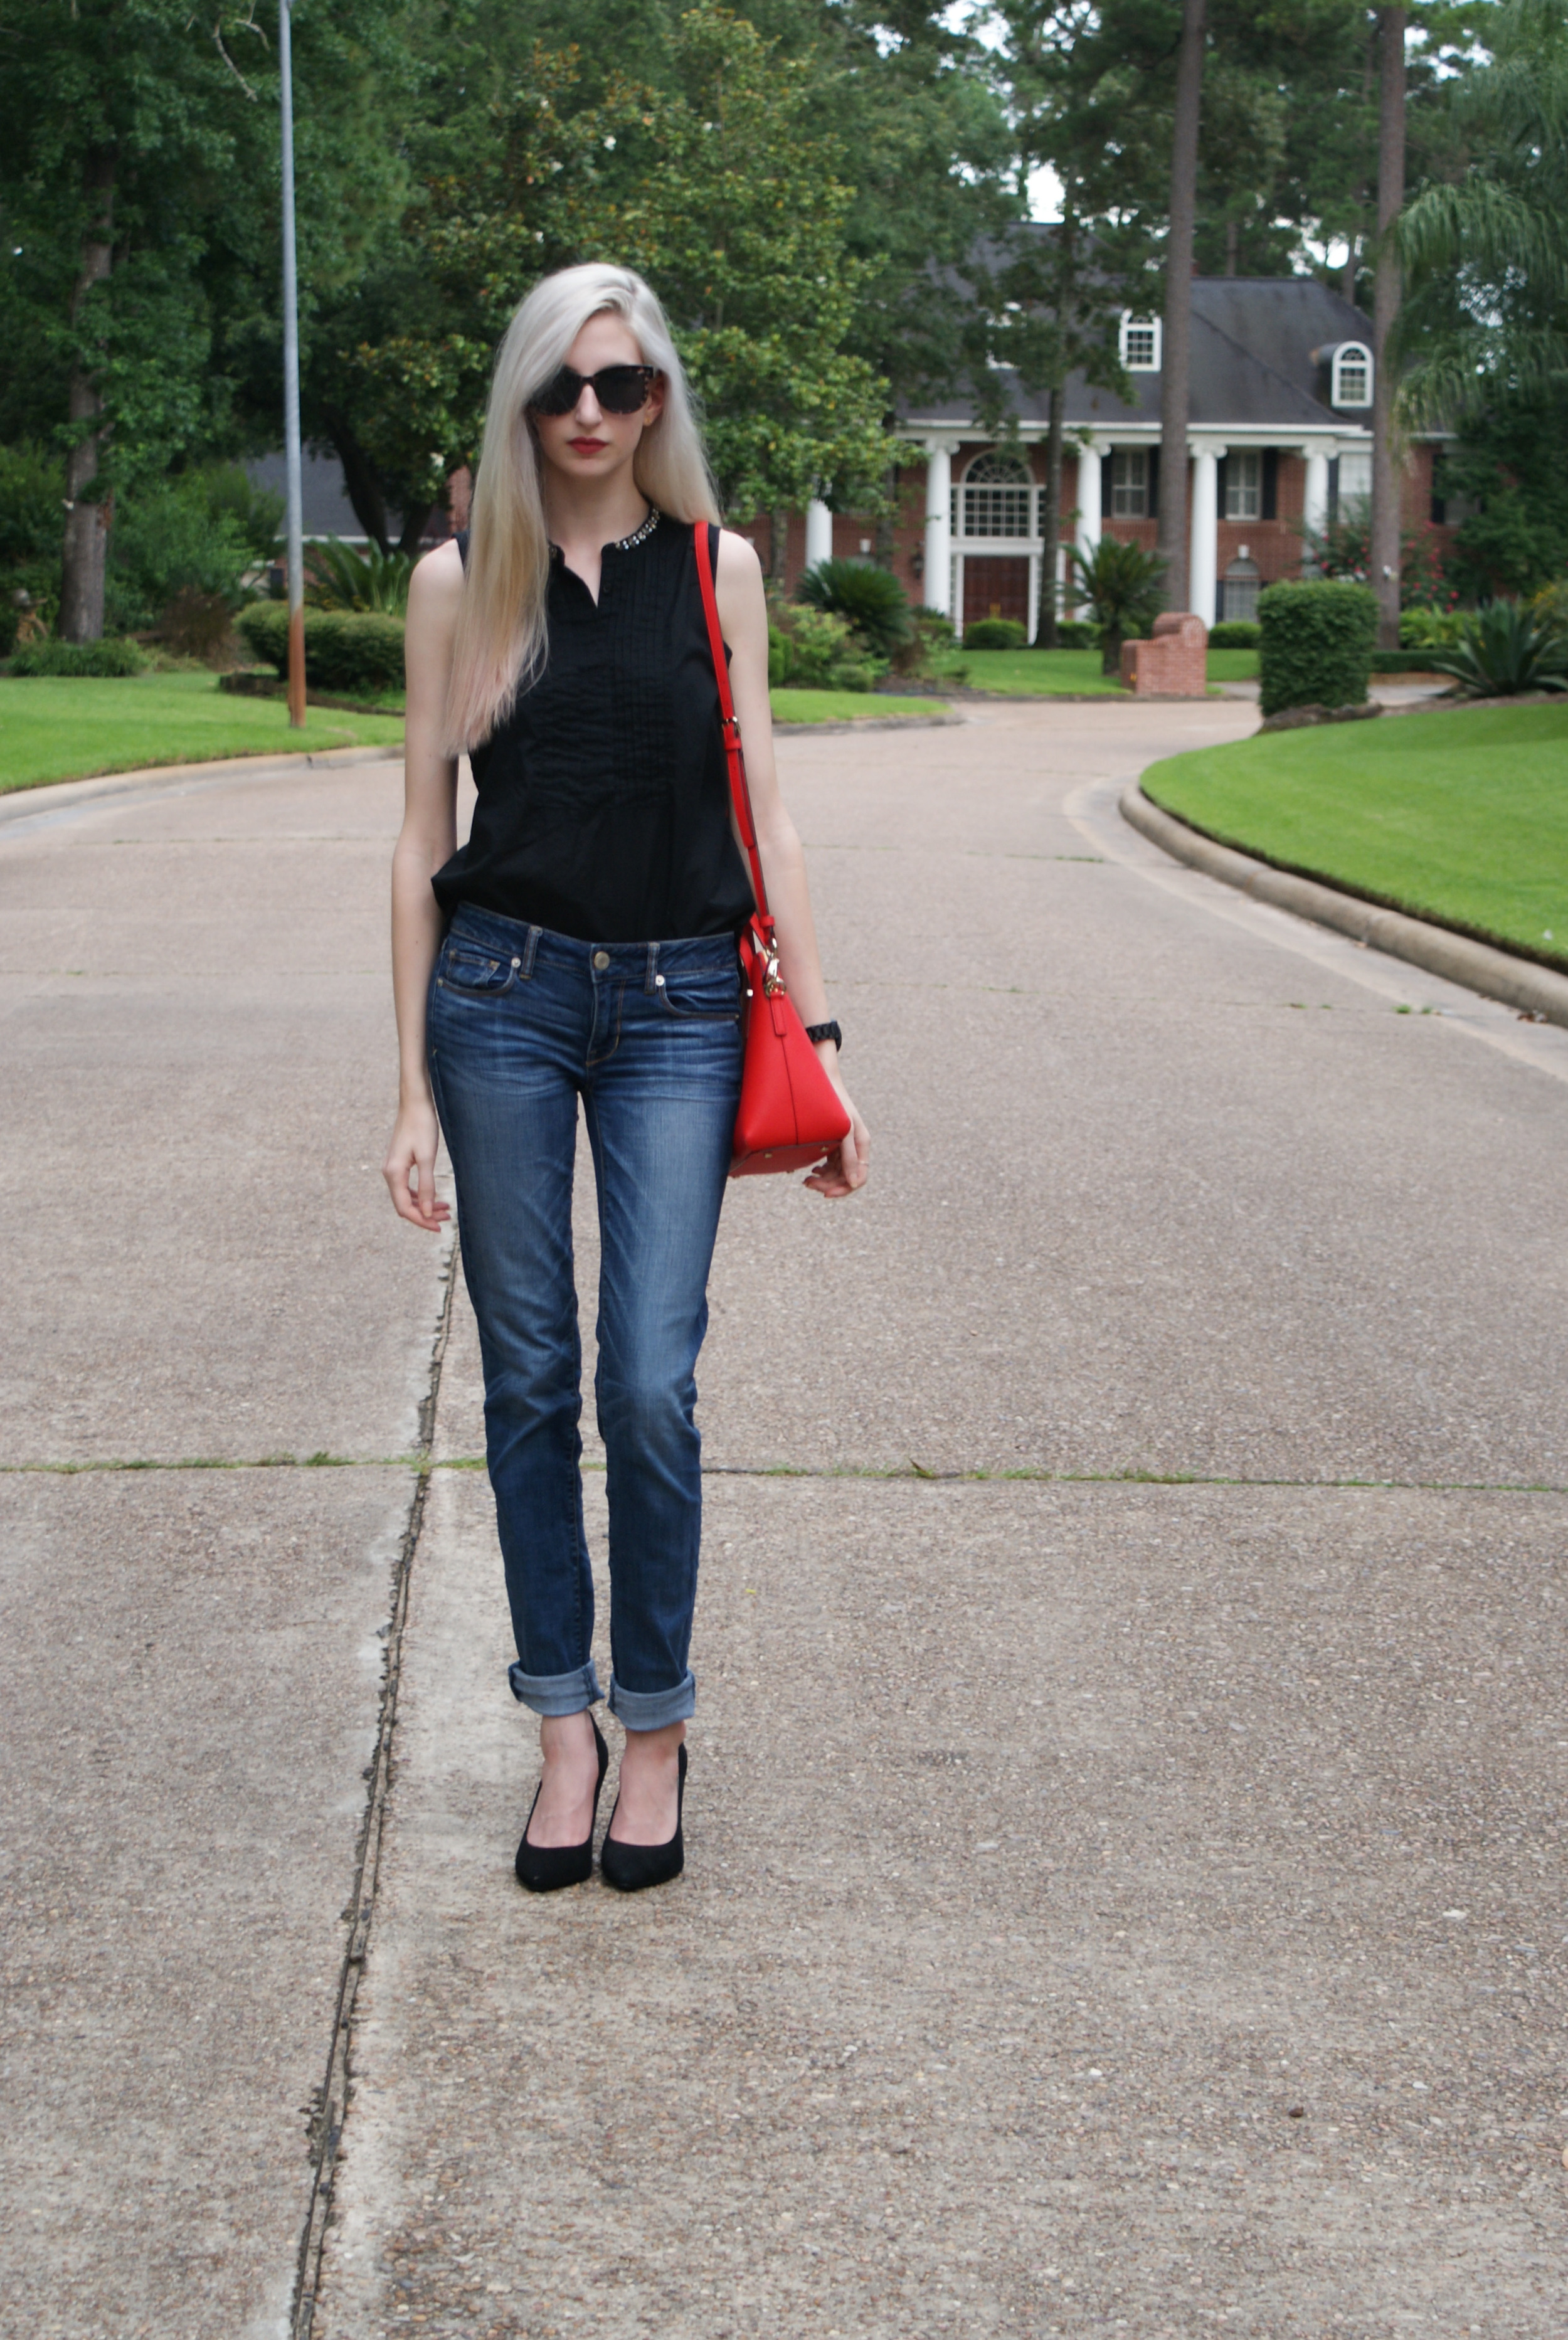 Top -  Similar  / Jeans -  American Eagle  / Shoes -  Similar  / Watch -  JORD Watches  / Bag -  Kate Spade  /